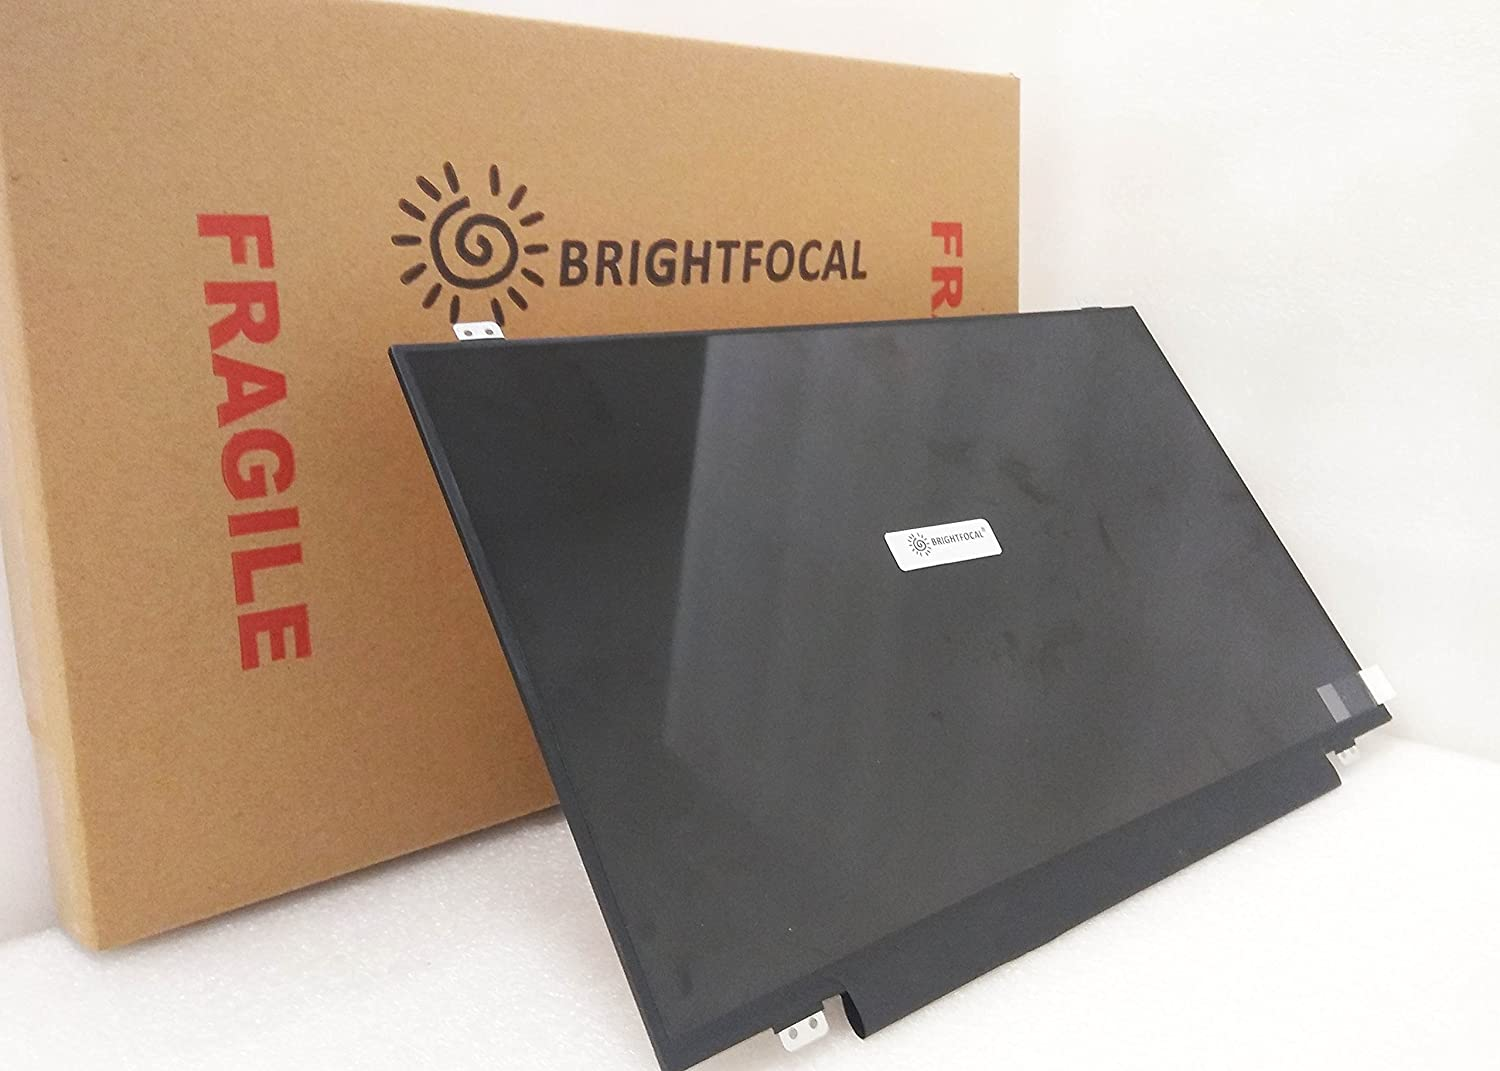 BRIGHTFOCAL New Screen Replacement for Max 57% OFF Special price Lenovo 01LV732 19 FHD FRU